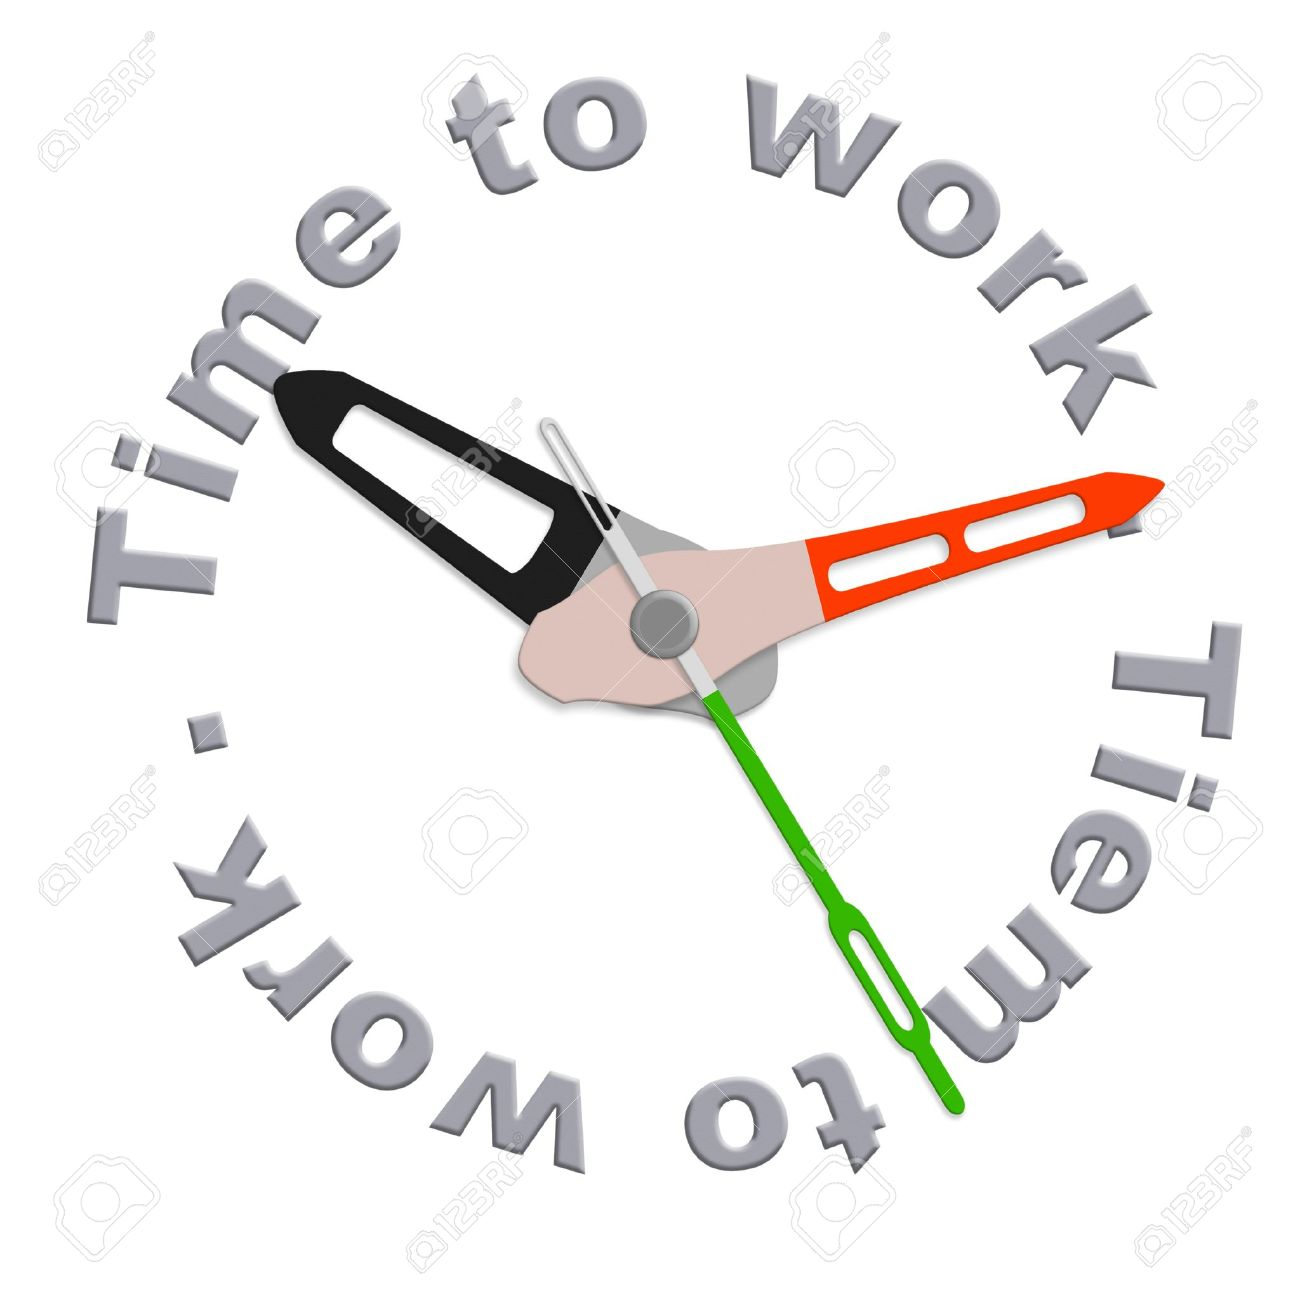 Working hours clipart.